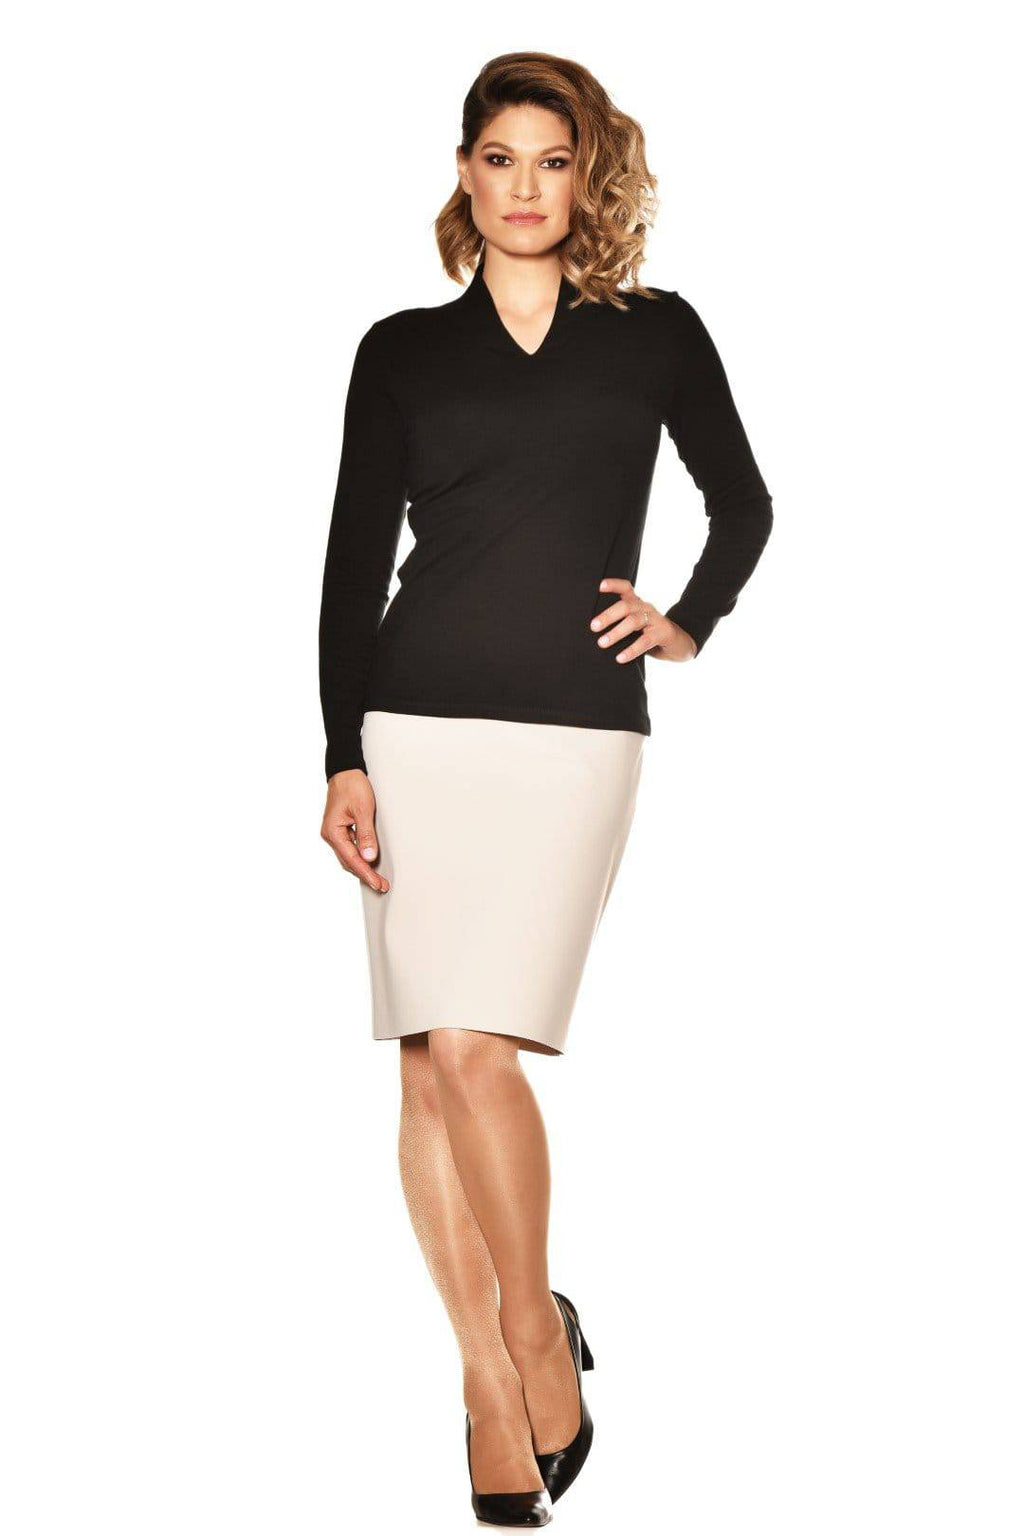 PAULA RYAN ESSENTIALS Easy Fit Long Sleeve High Neck V Top - Merino - Top - Paula Ryan Essentials - Paula Ryan